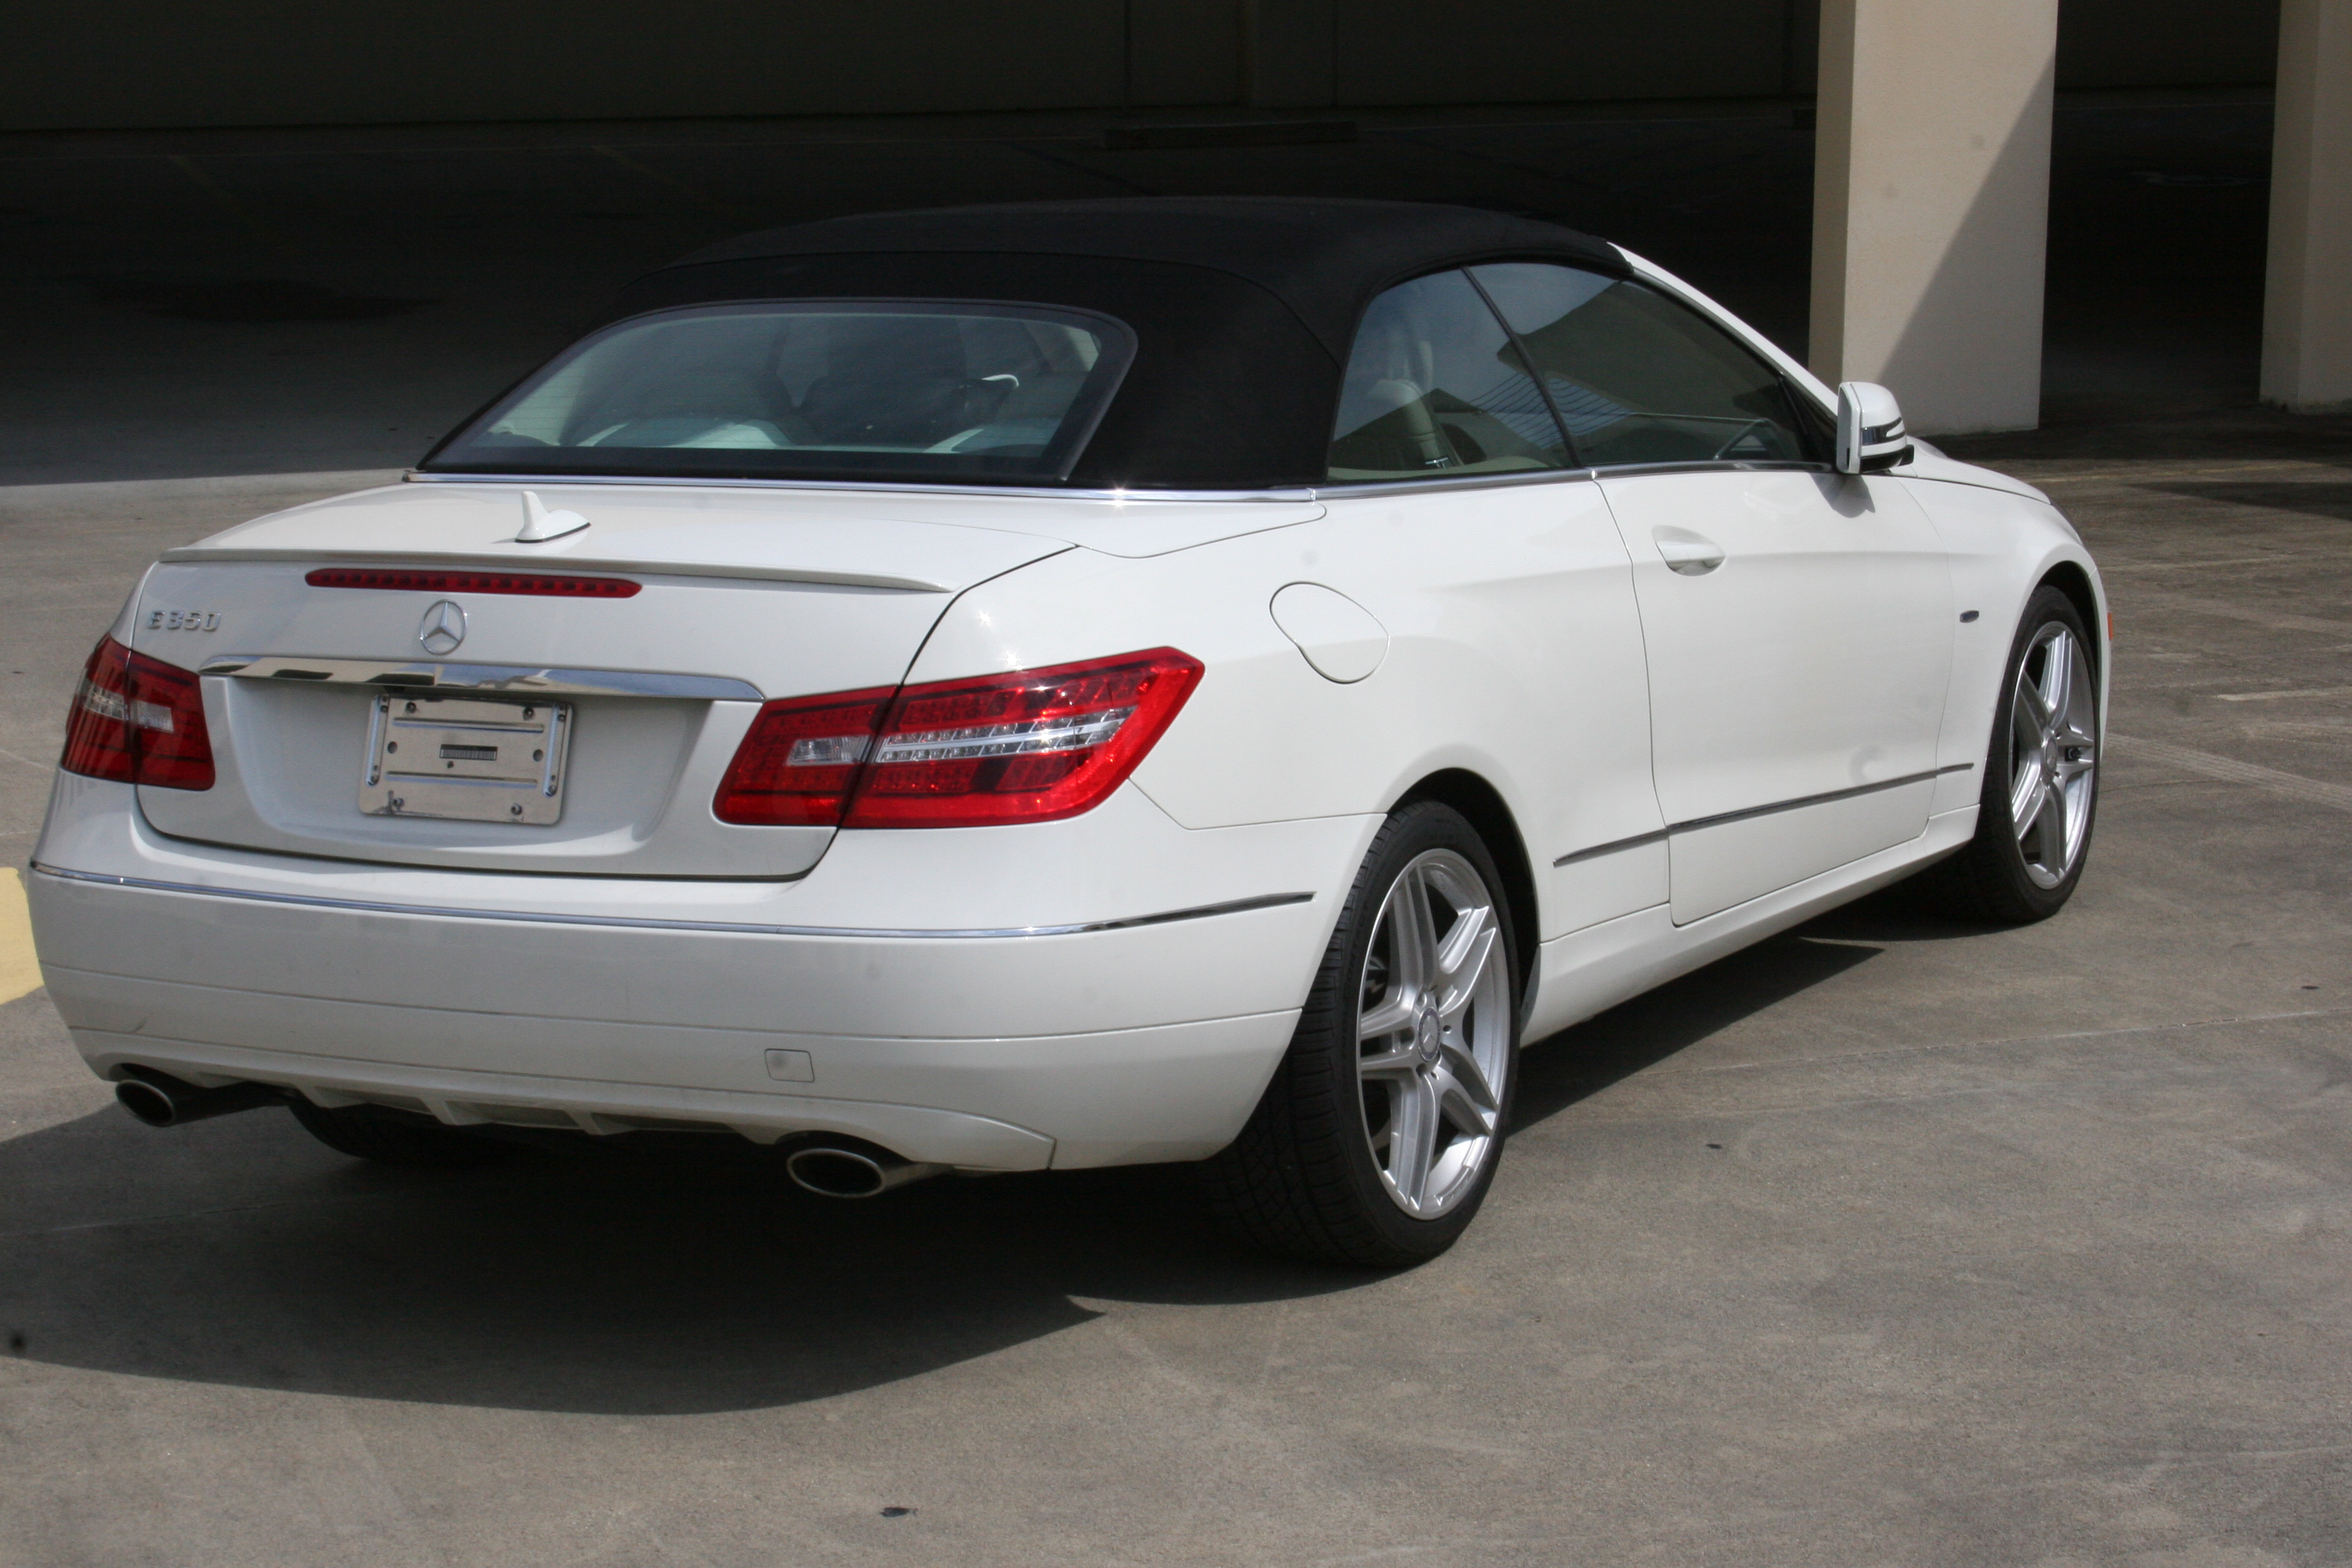 benz photos rwd cabriolet e las nv inventory class view mercedes vegas additional